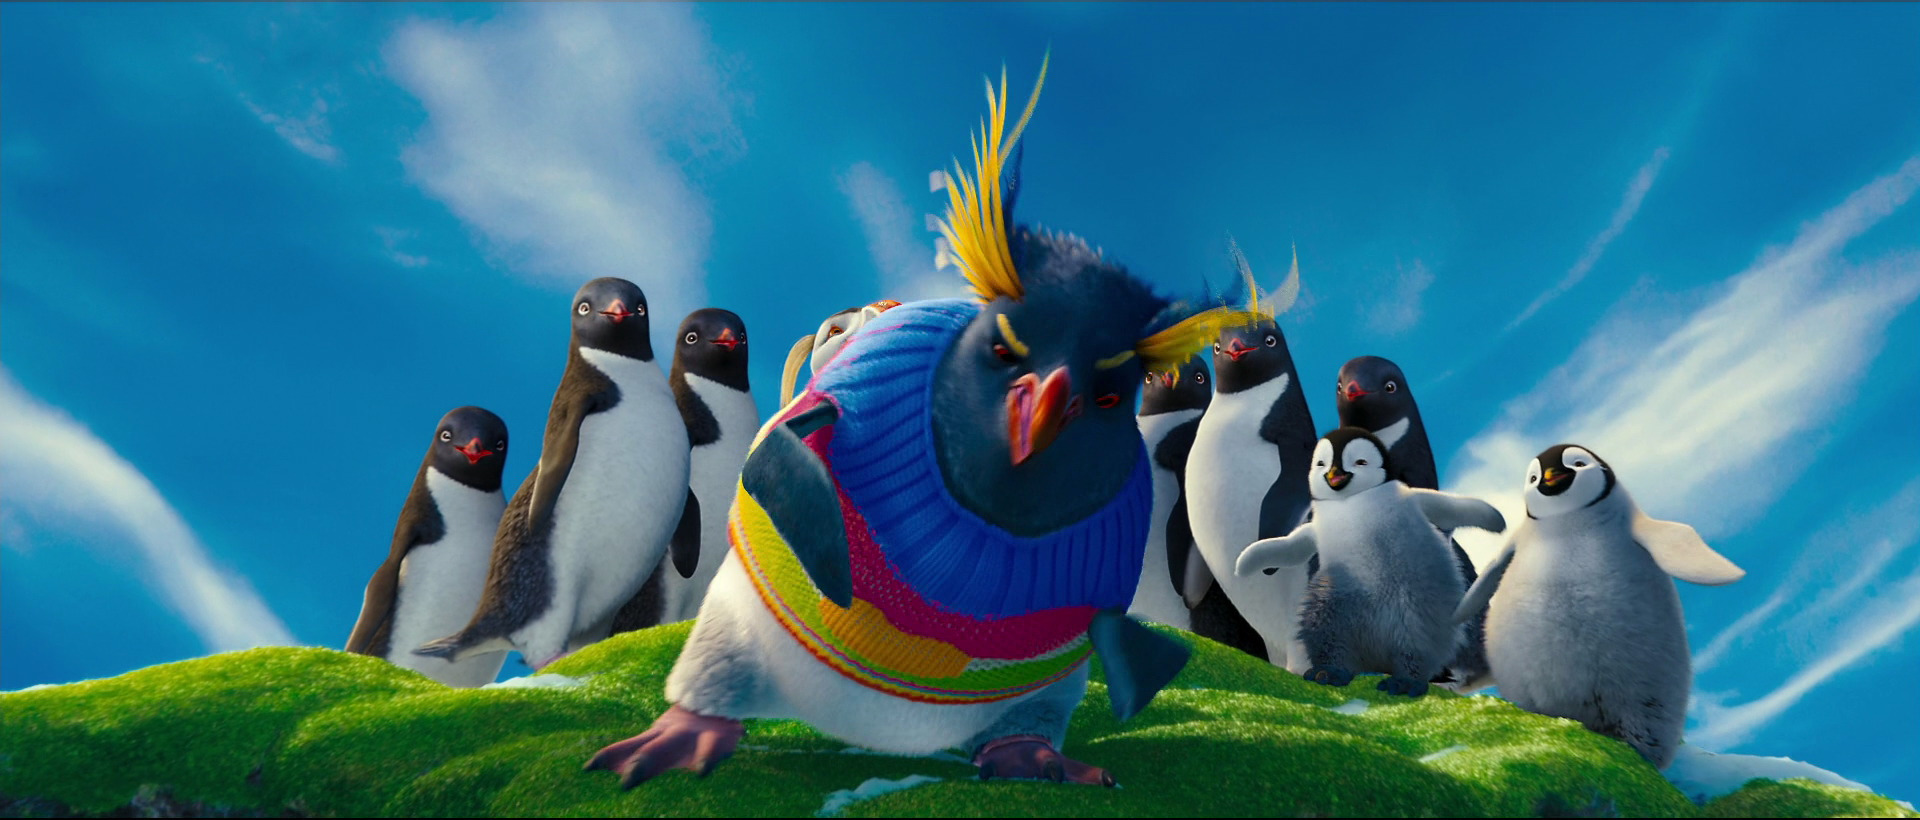 Uncategorized Lovelace Happy Feet image happy feet2 disneyscreencaps com 2448 jpg feet wiki fandom powered by wikia